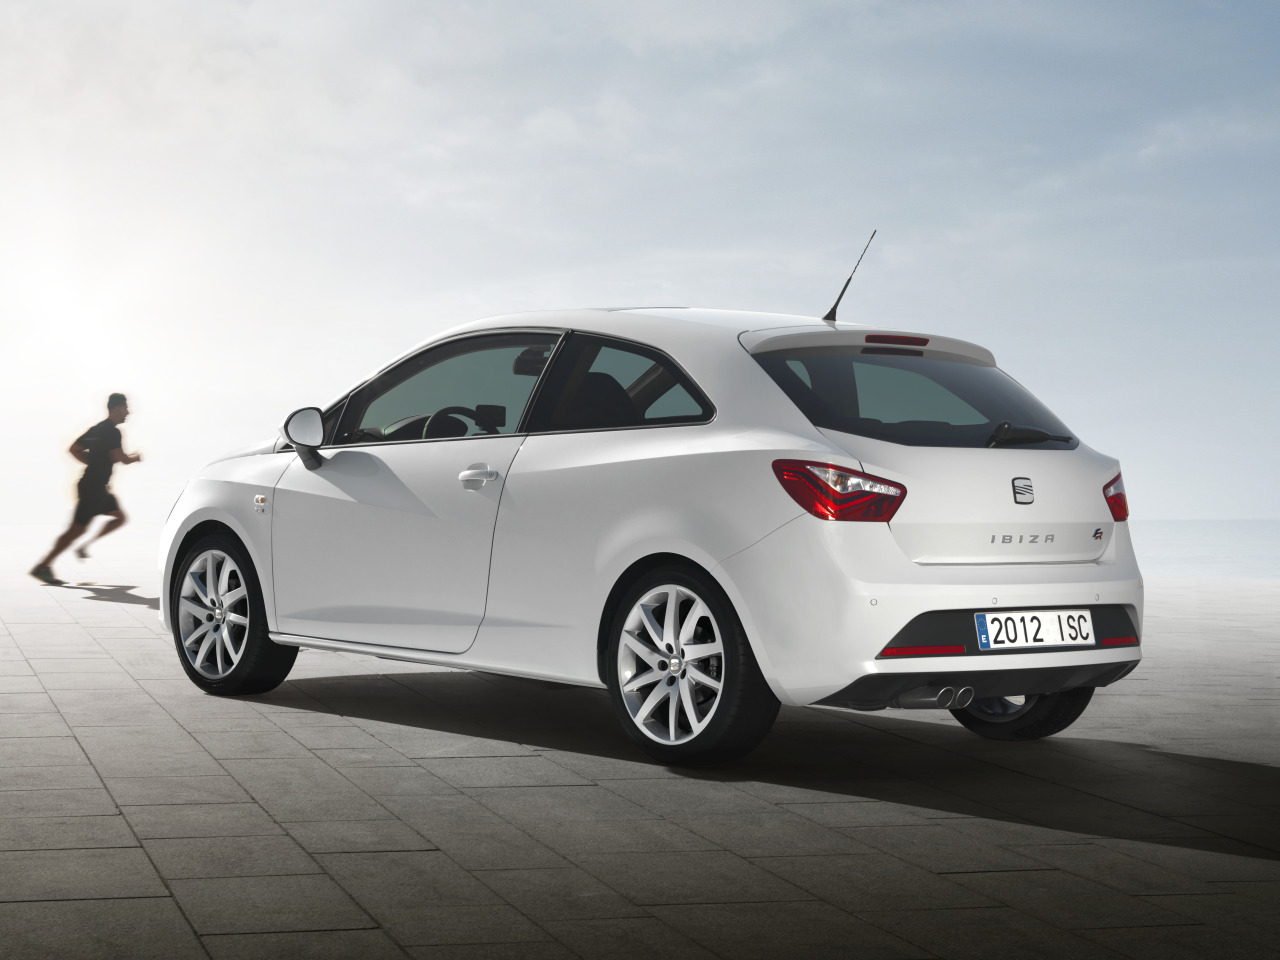 seat ibiza facelift 2012 sc 5 porte st fr seat autopareri. Black Bedroom Furniture Sets. Home Design Ideas